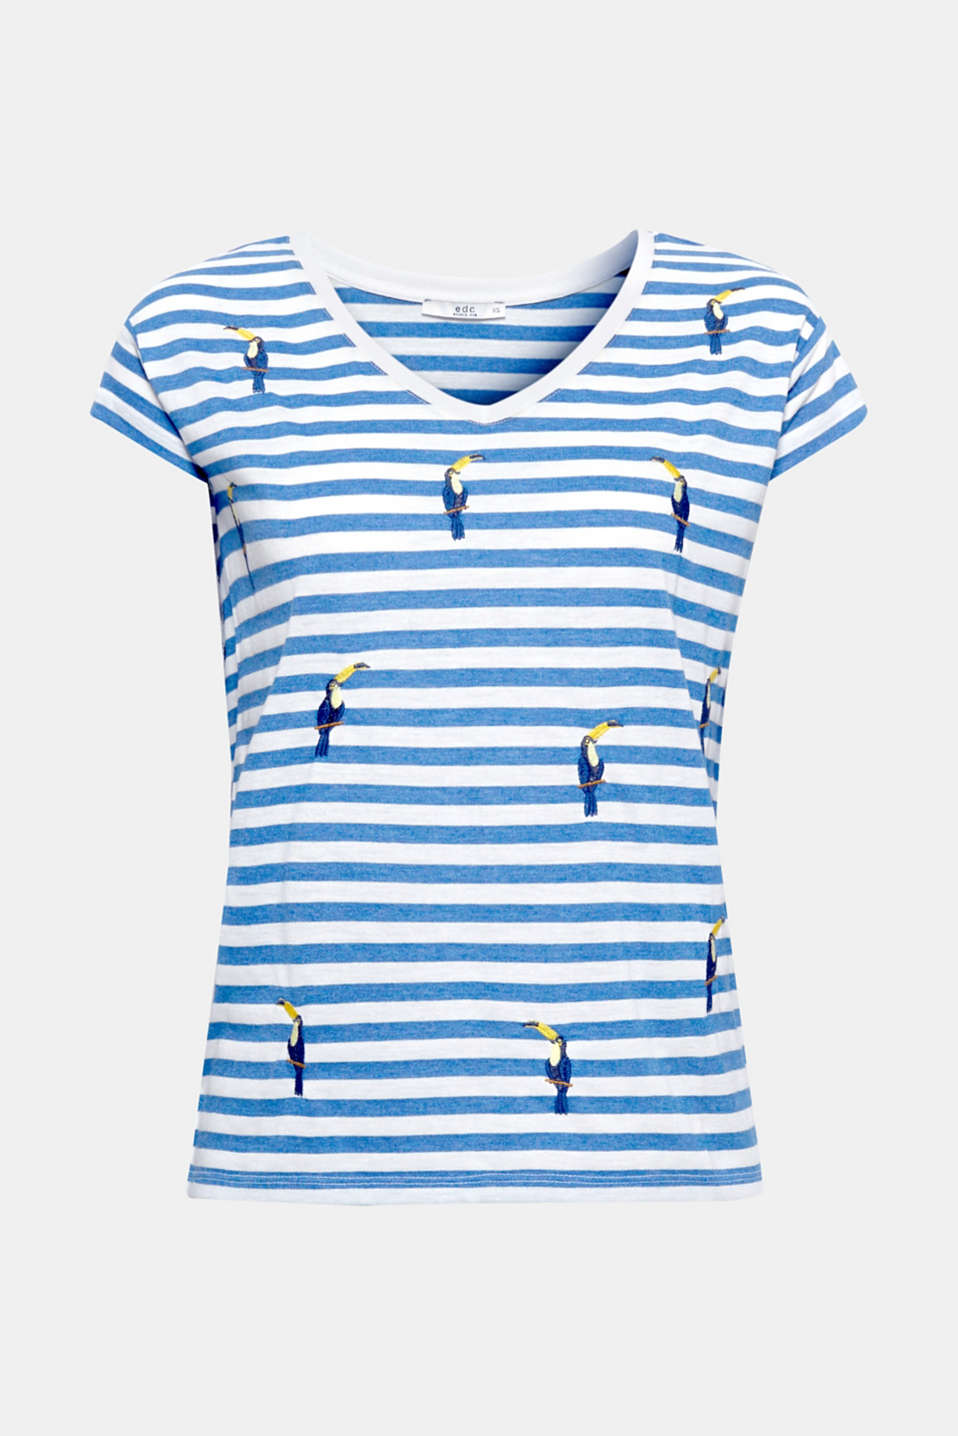 Be my cactus: the combination of stripes and embroidered cactus or cockatoo motifs gives this T-shirt a summery vibe!